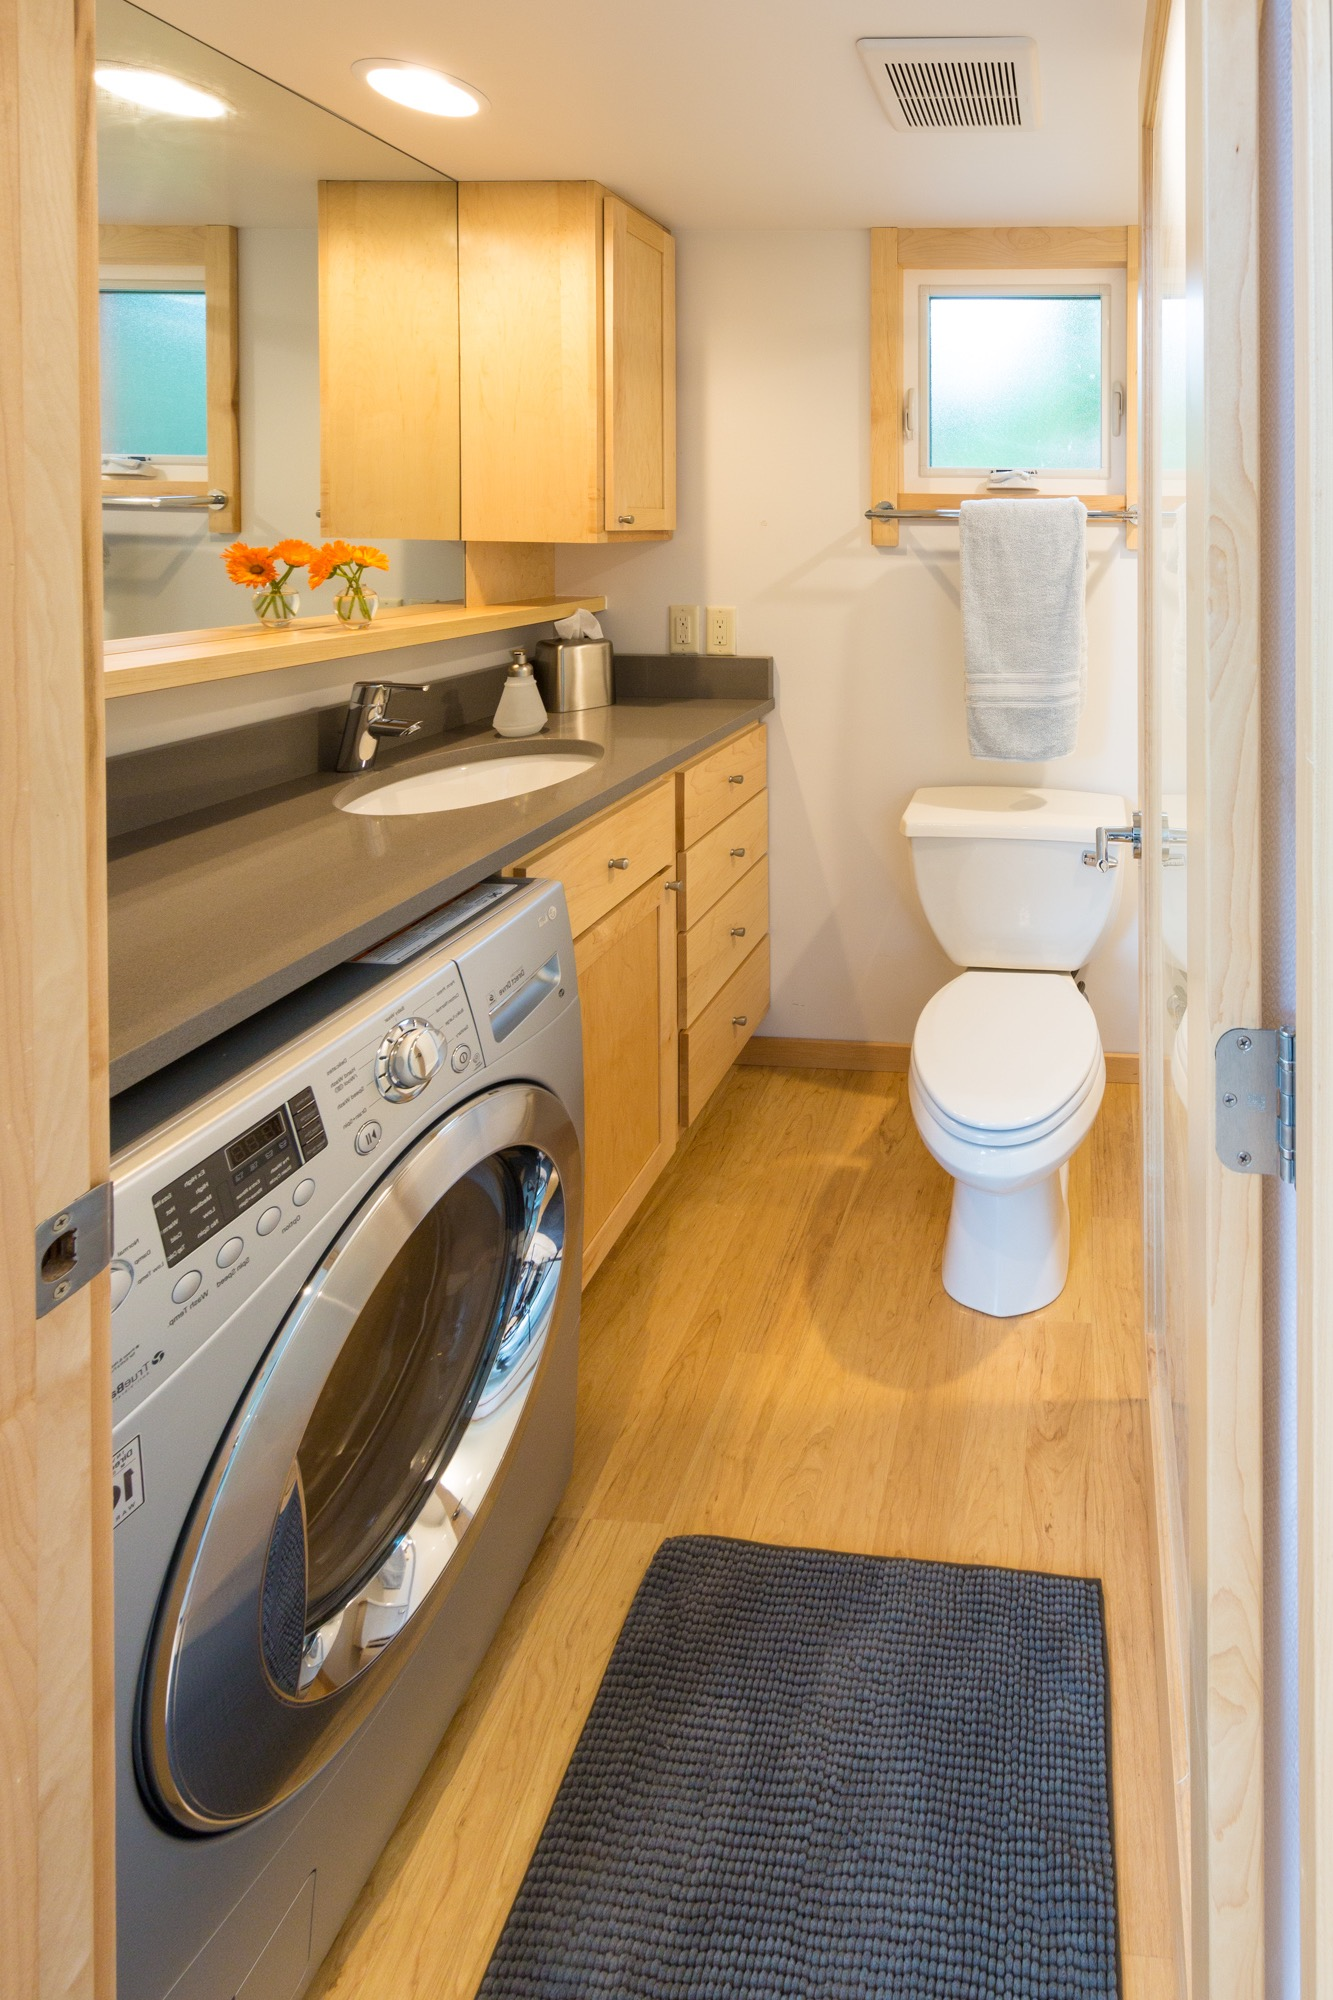 Small Bathroom And Laundry Combo Maximizes Square Footage (View 6 of 14)